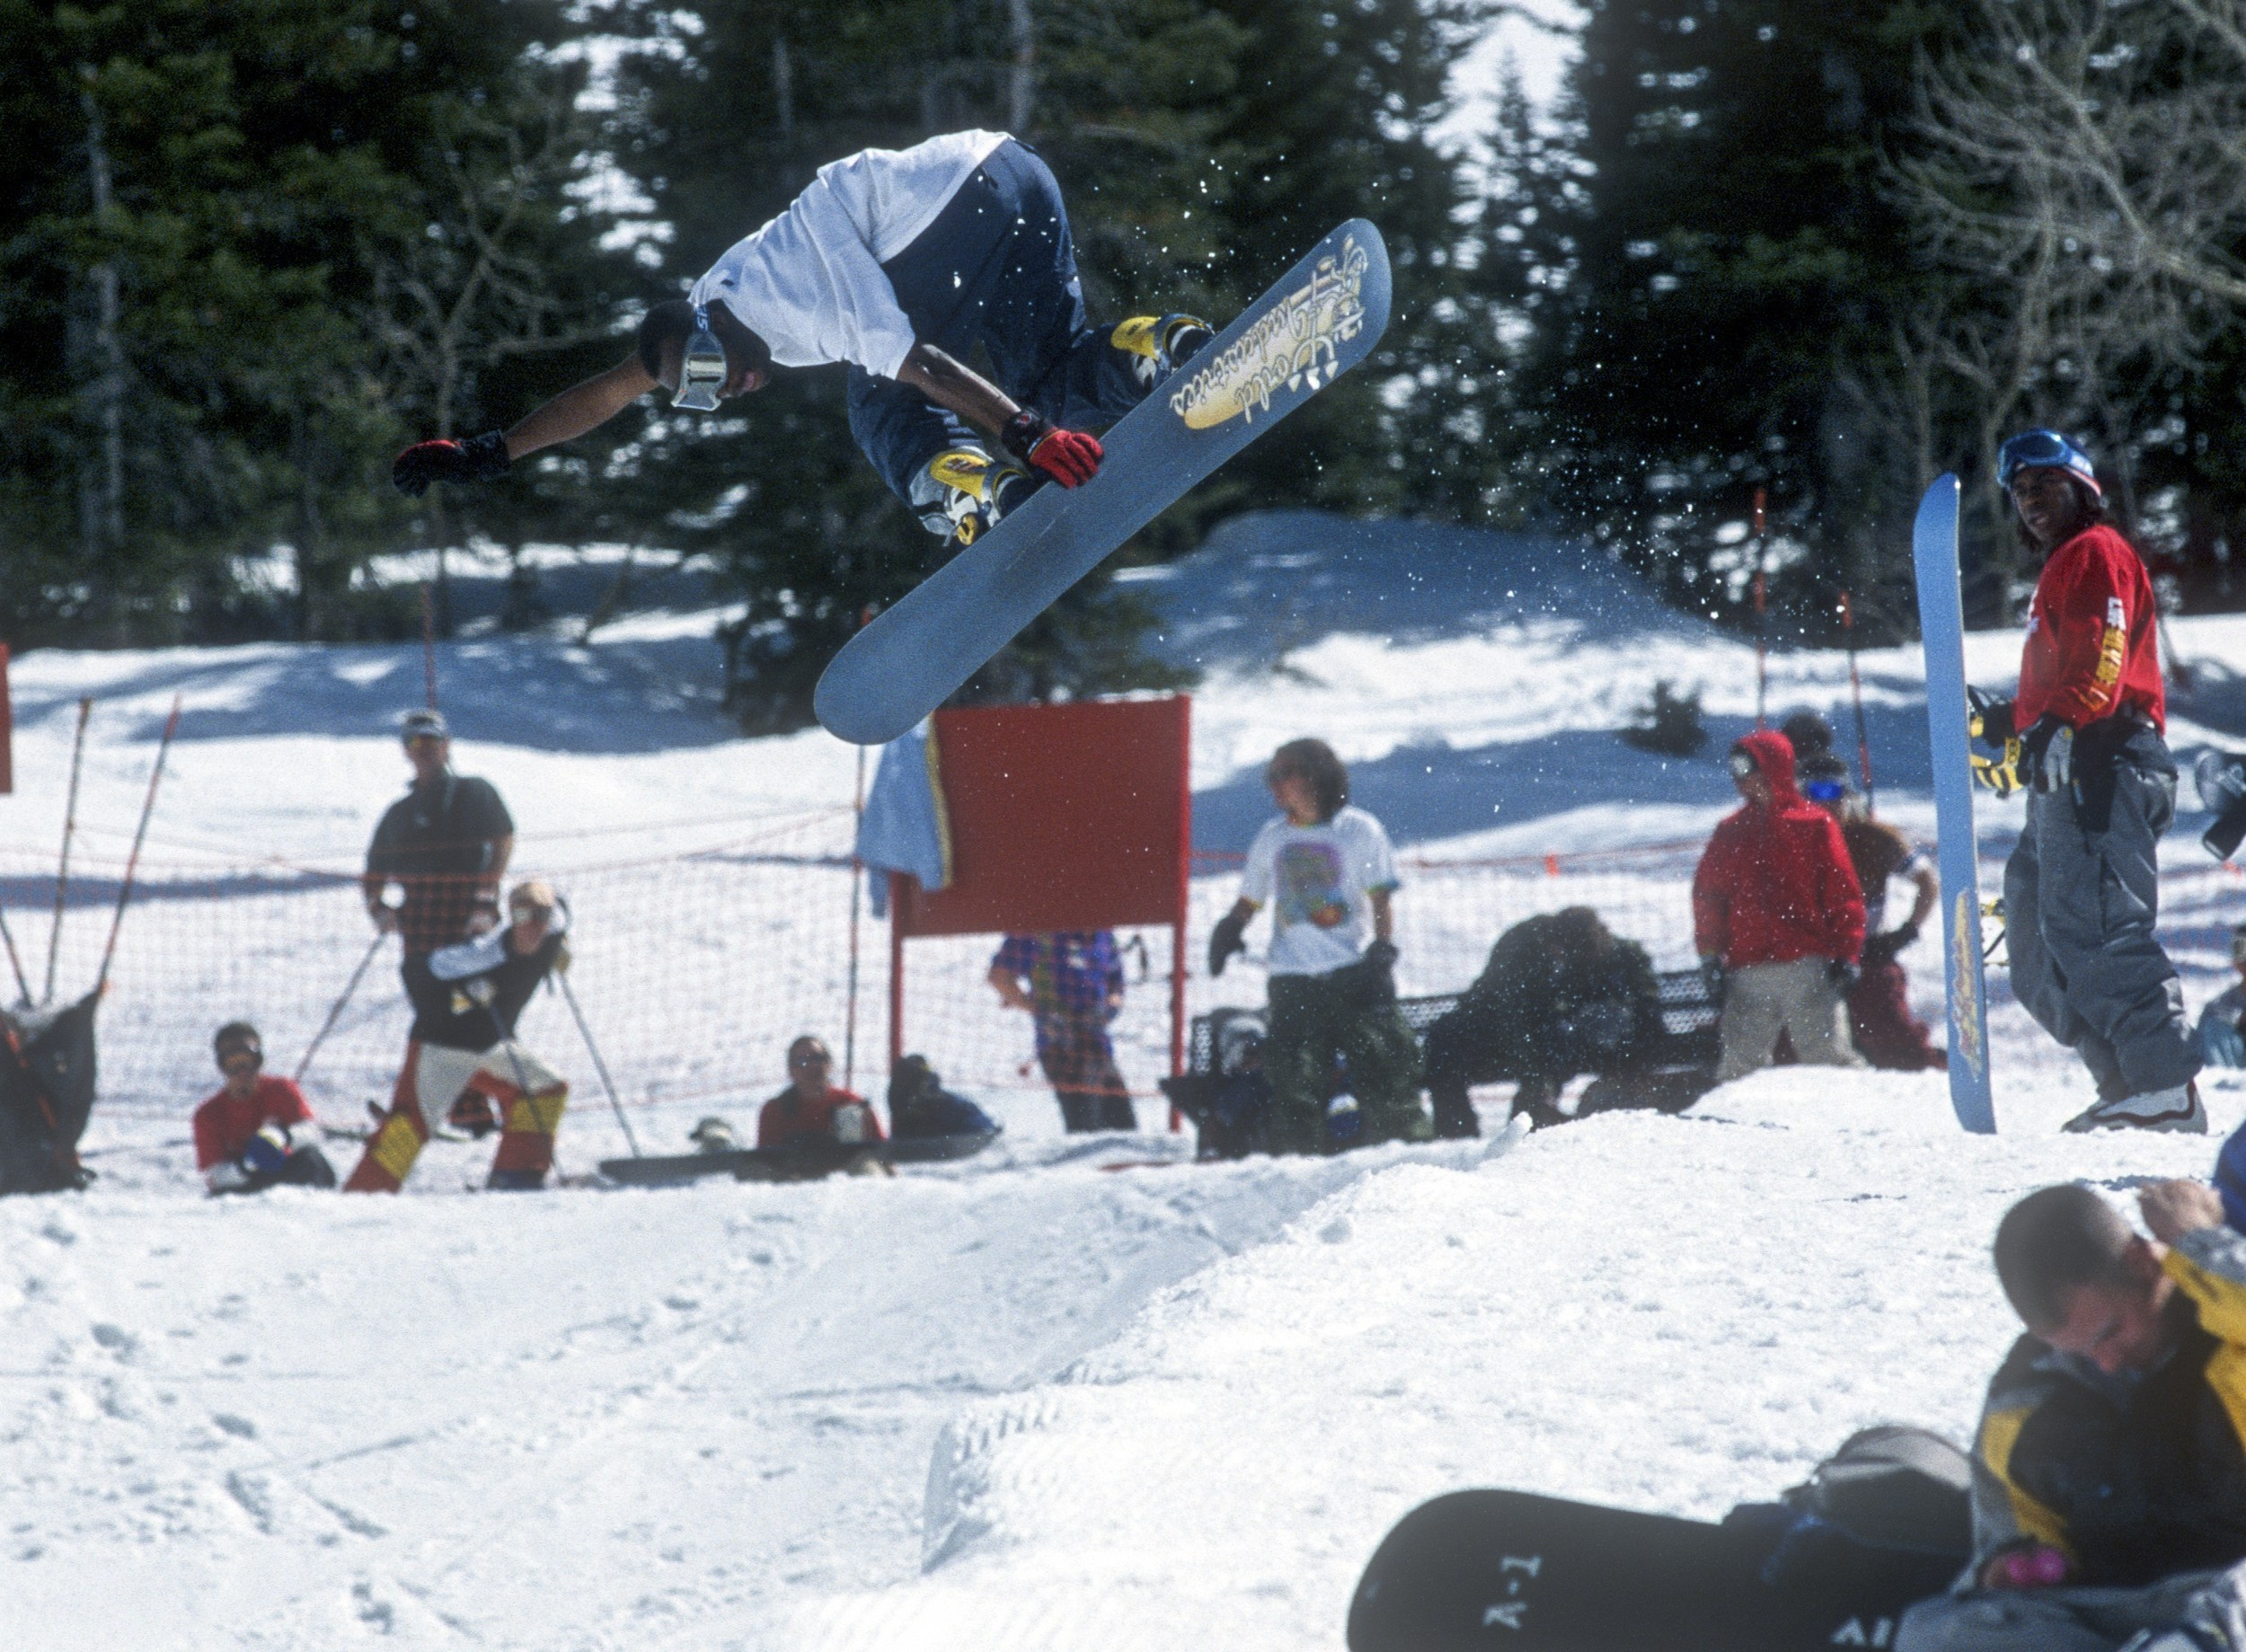 Russell Winfield Snowboarder Magazine cover interview